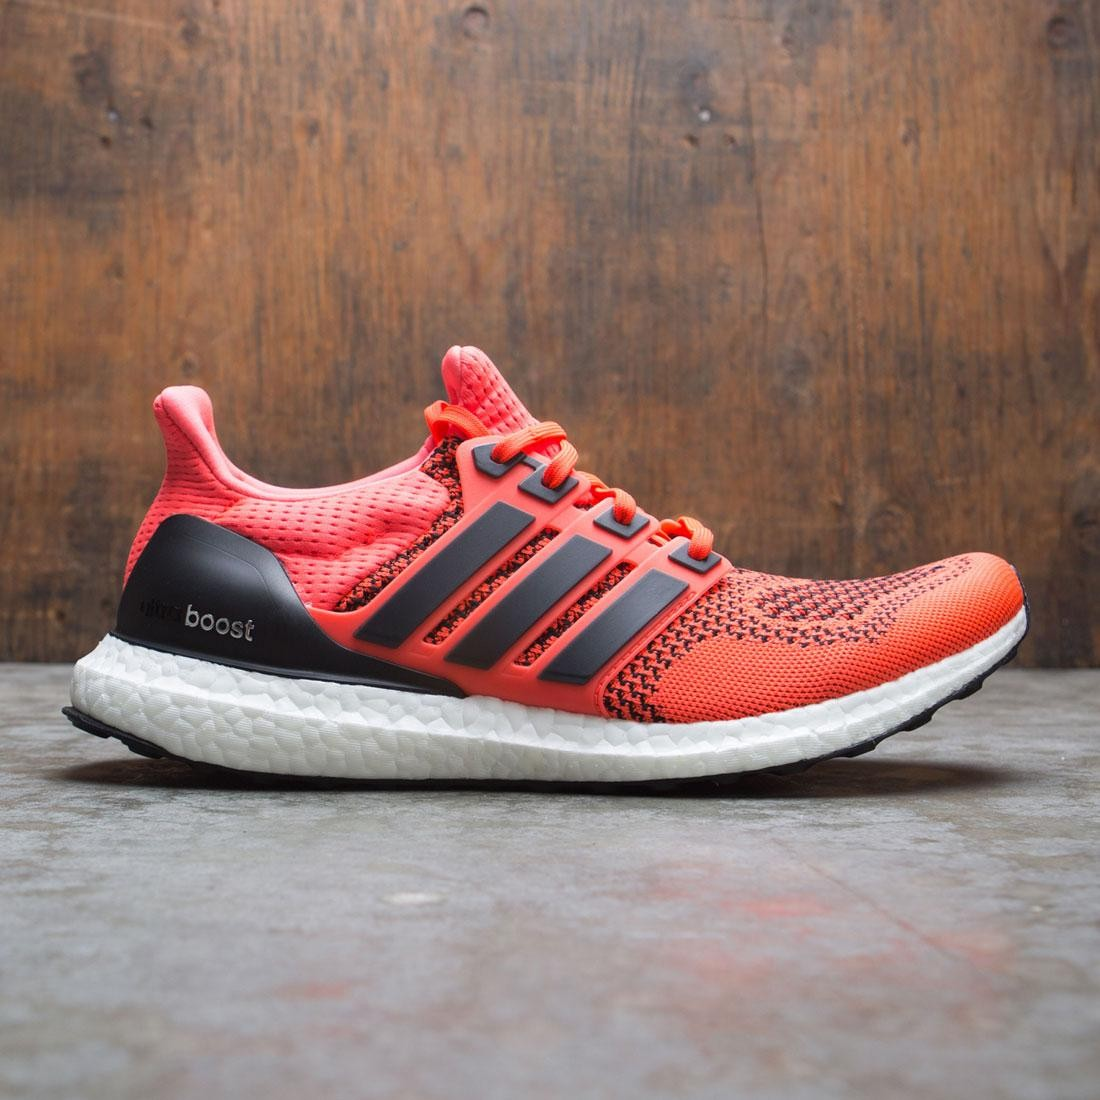 Adidas Men UltraBOOST (red / core black / solar red)